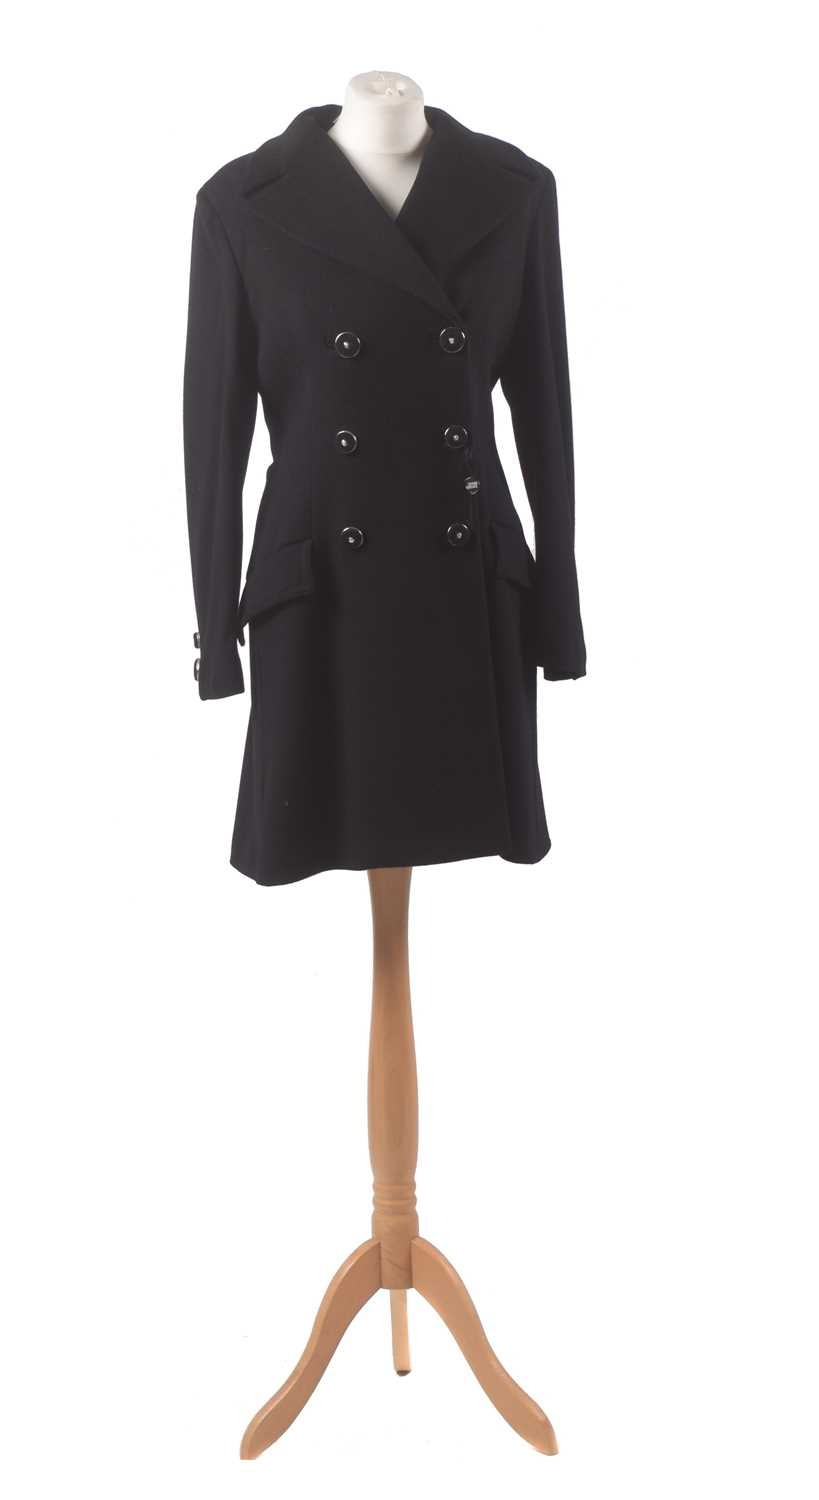 A black wool coat by Gianni Versace Couture, the mid length black wool coat with silver tone buttons bearing makers logo, size 42.